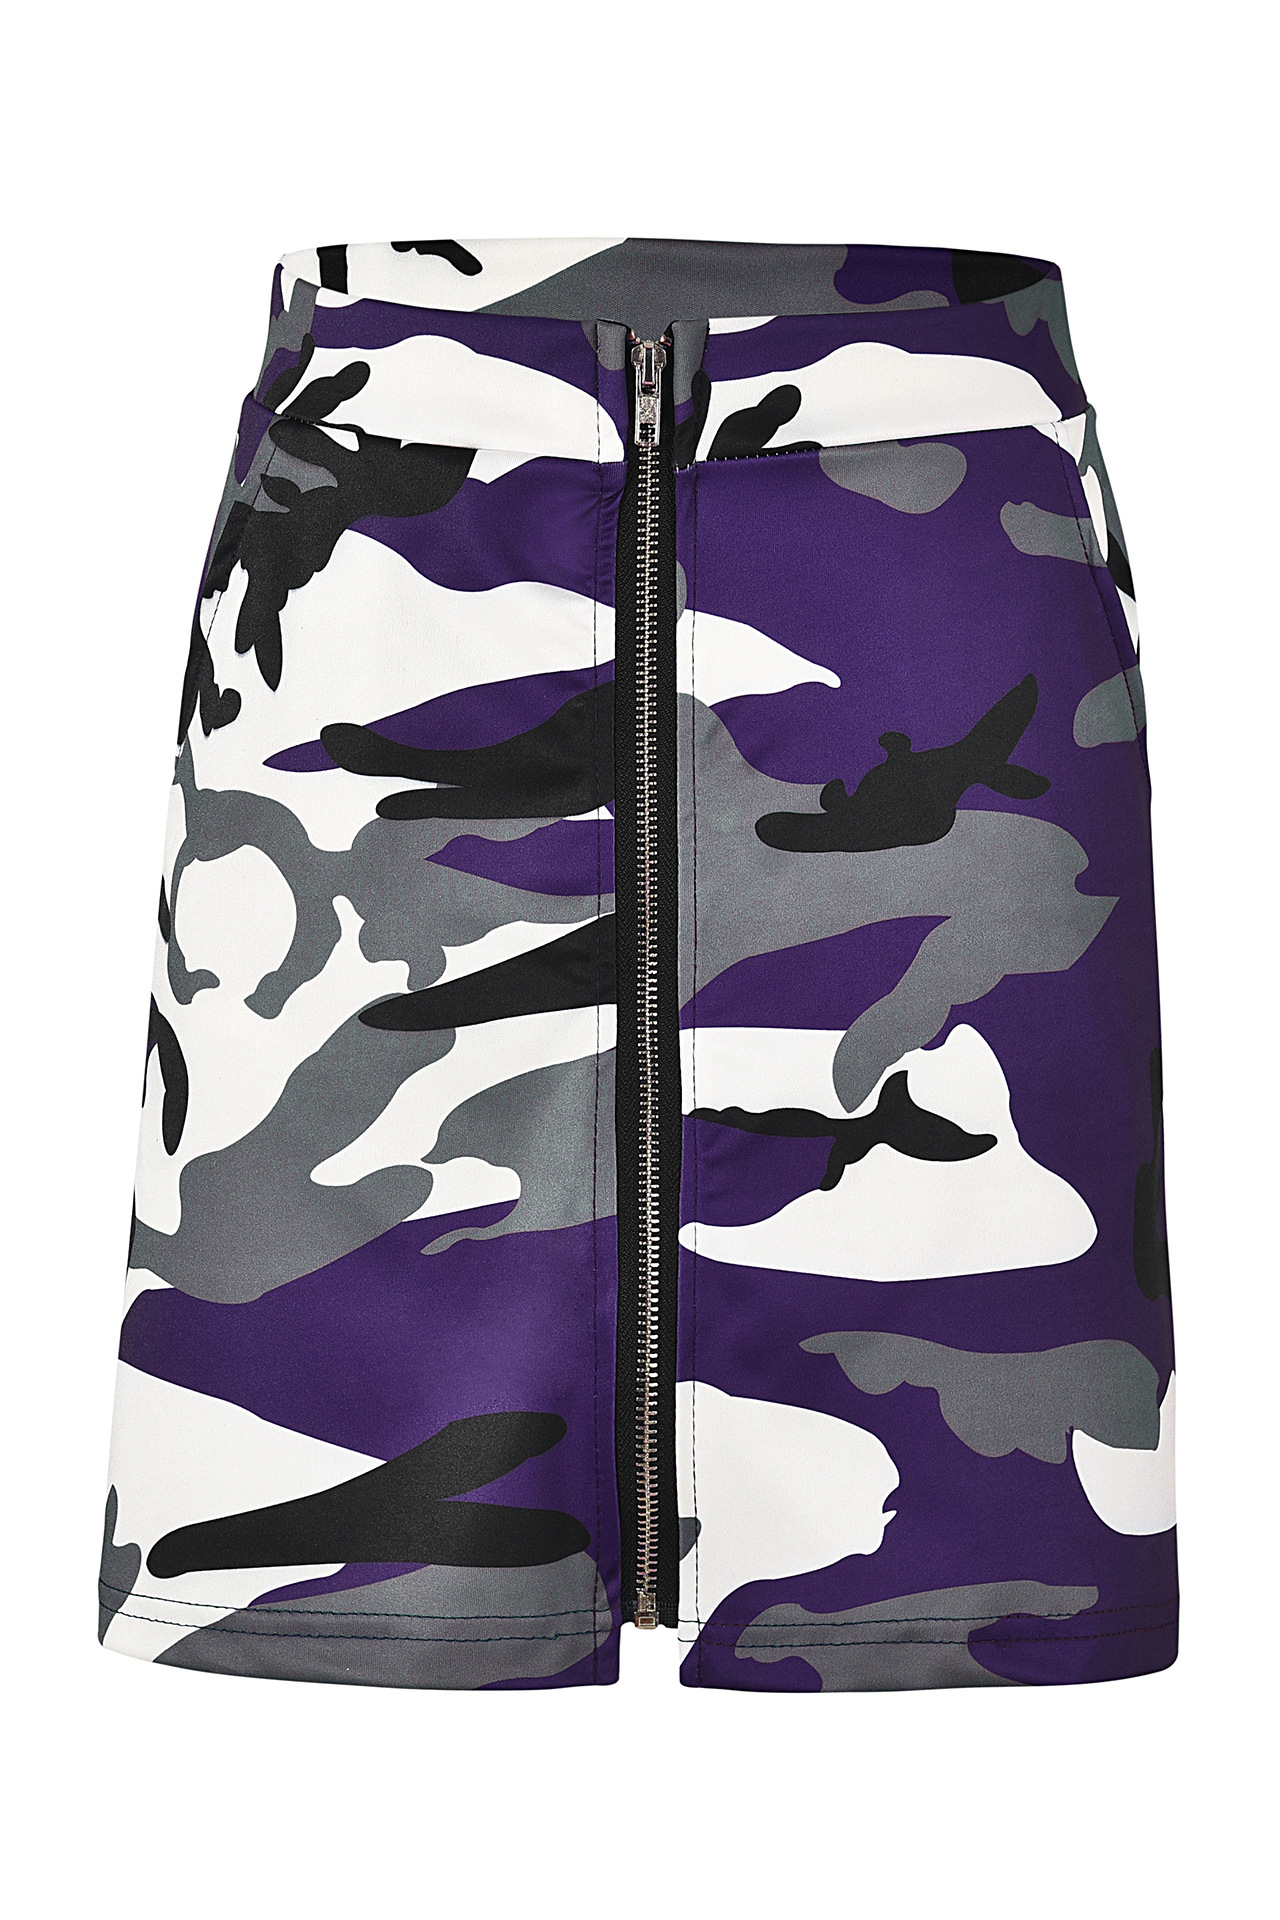 Women Camouflage Mini Skirt Front Zipper High Waist Sexy Slim Shoot Bodycon Skirt purple